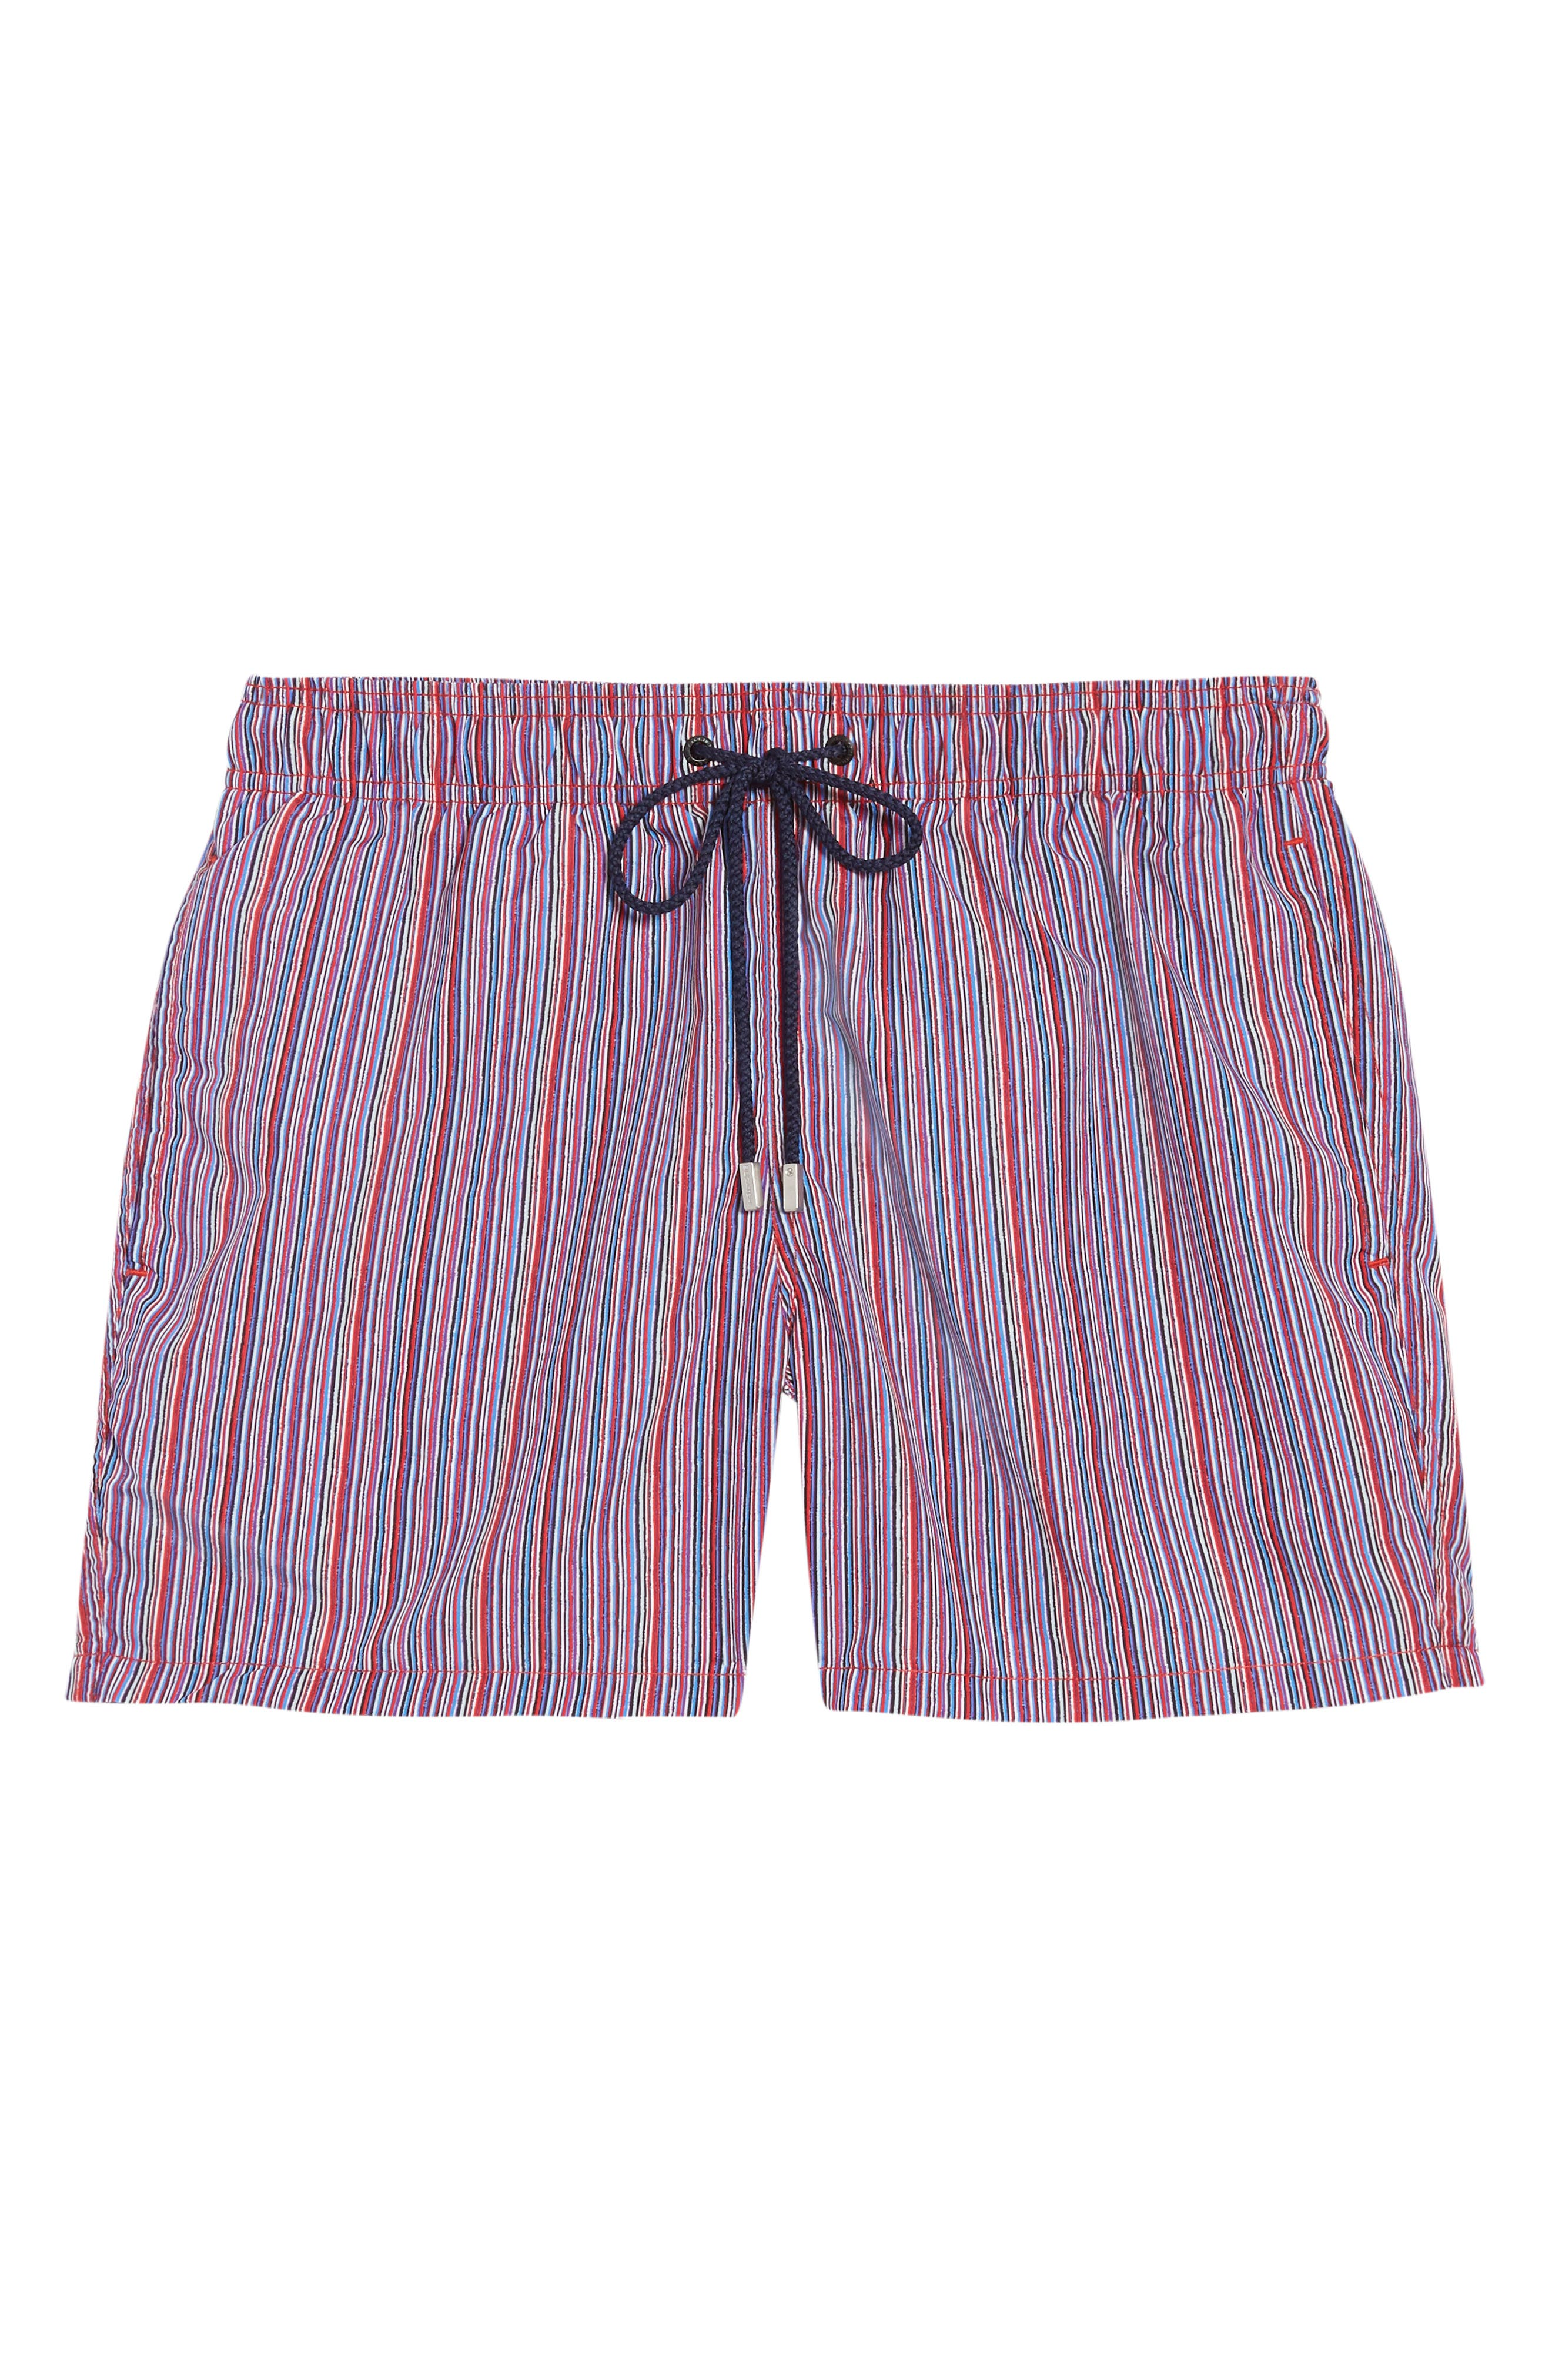 Slim stripes bring a bold splash of color to quick-drying swim trunks with an adjustable drawstring at the waist. Back drainage grommets help prevent ballooning when you jump in the water. Style Name: Bugatchi Stripe Swim Trunks. Style Number: 6039775. Available in stores.